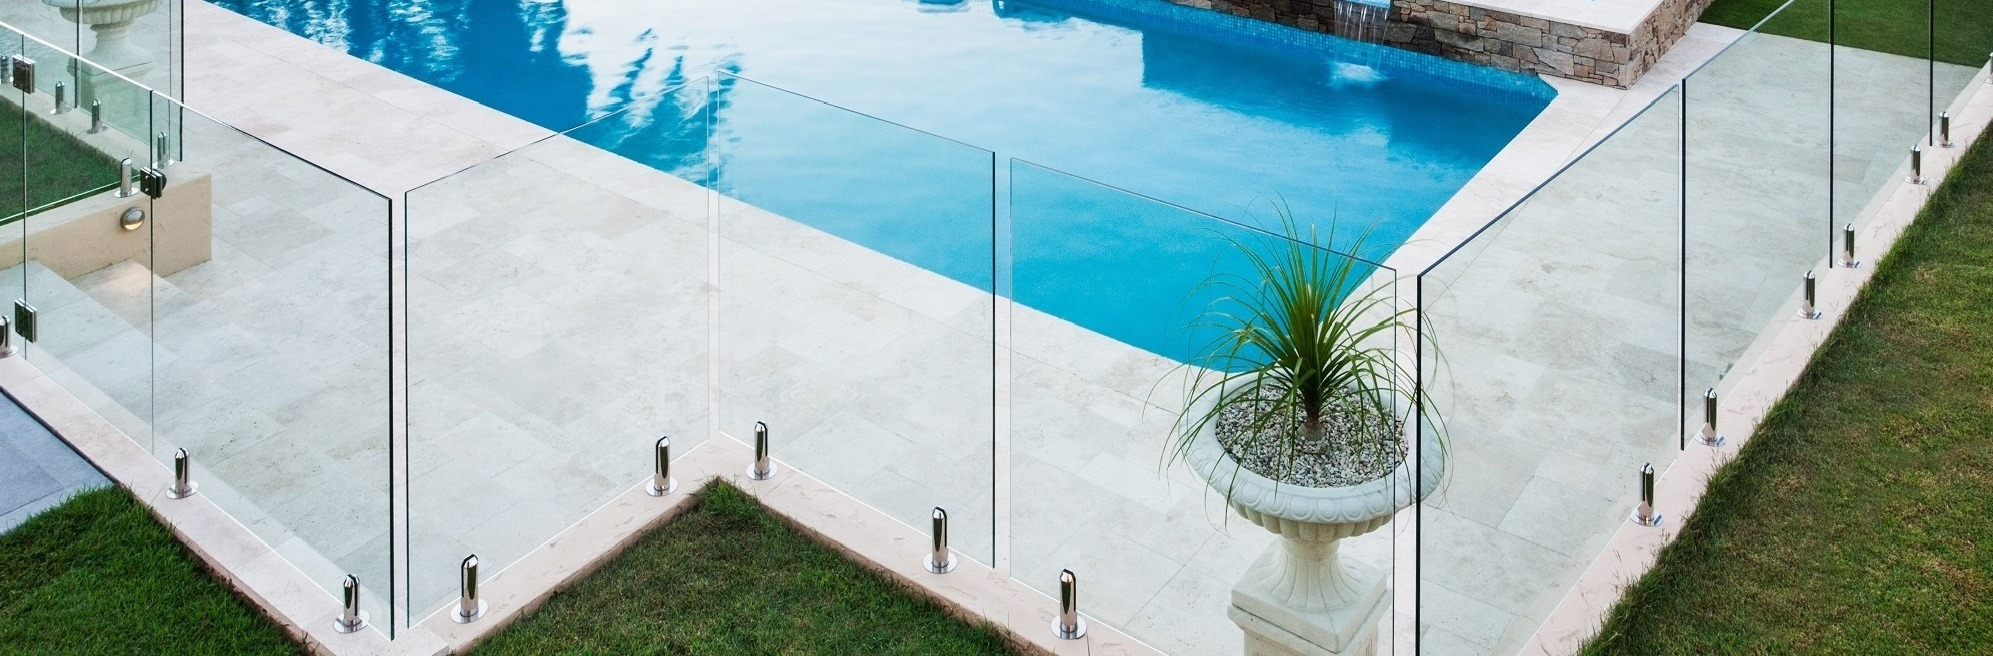 Glass Pool Fencing Brisbane Qld